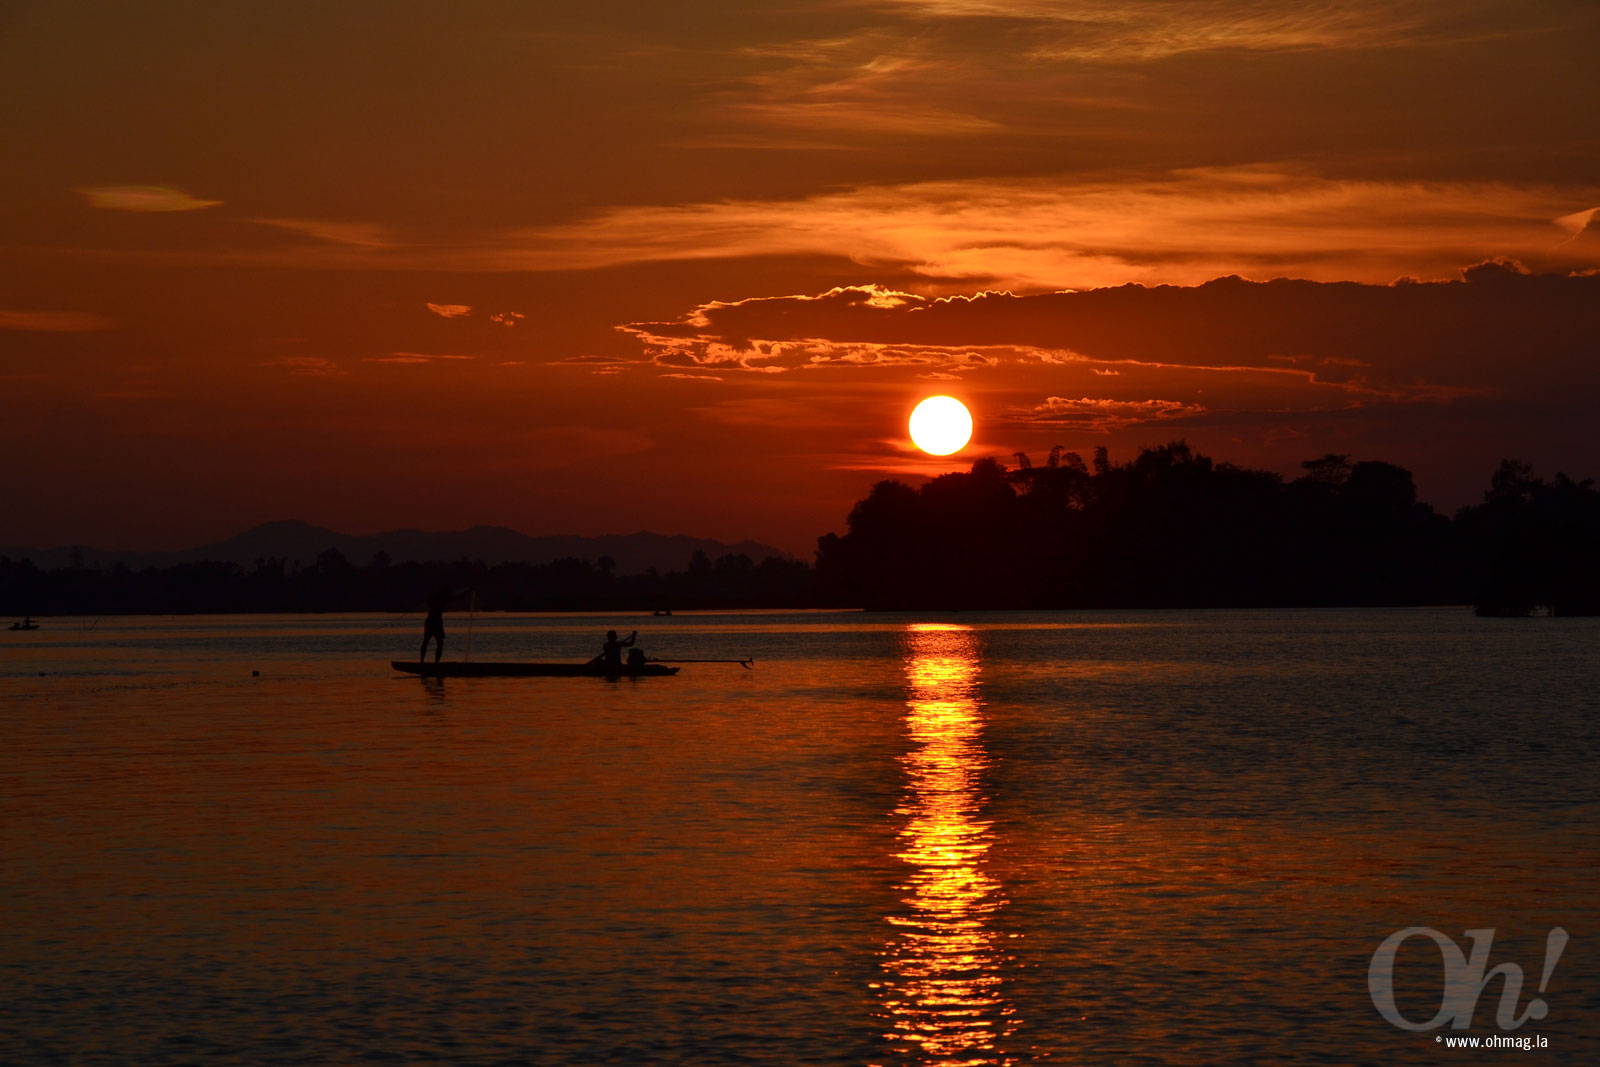 Sunset at the Mekong River, Champassak, Laos